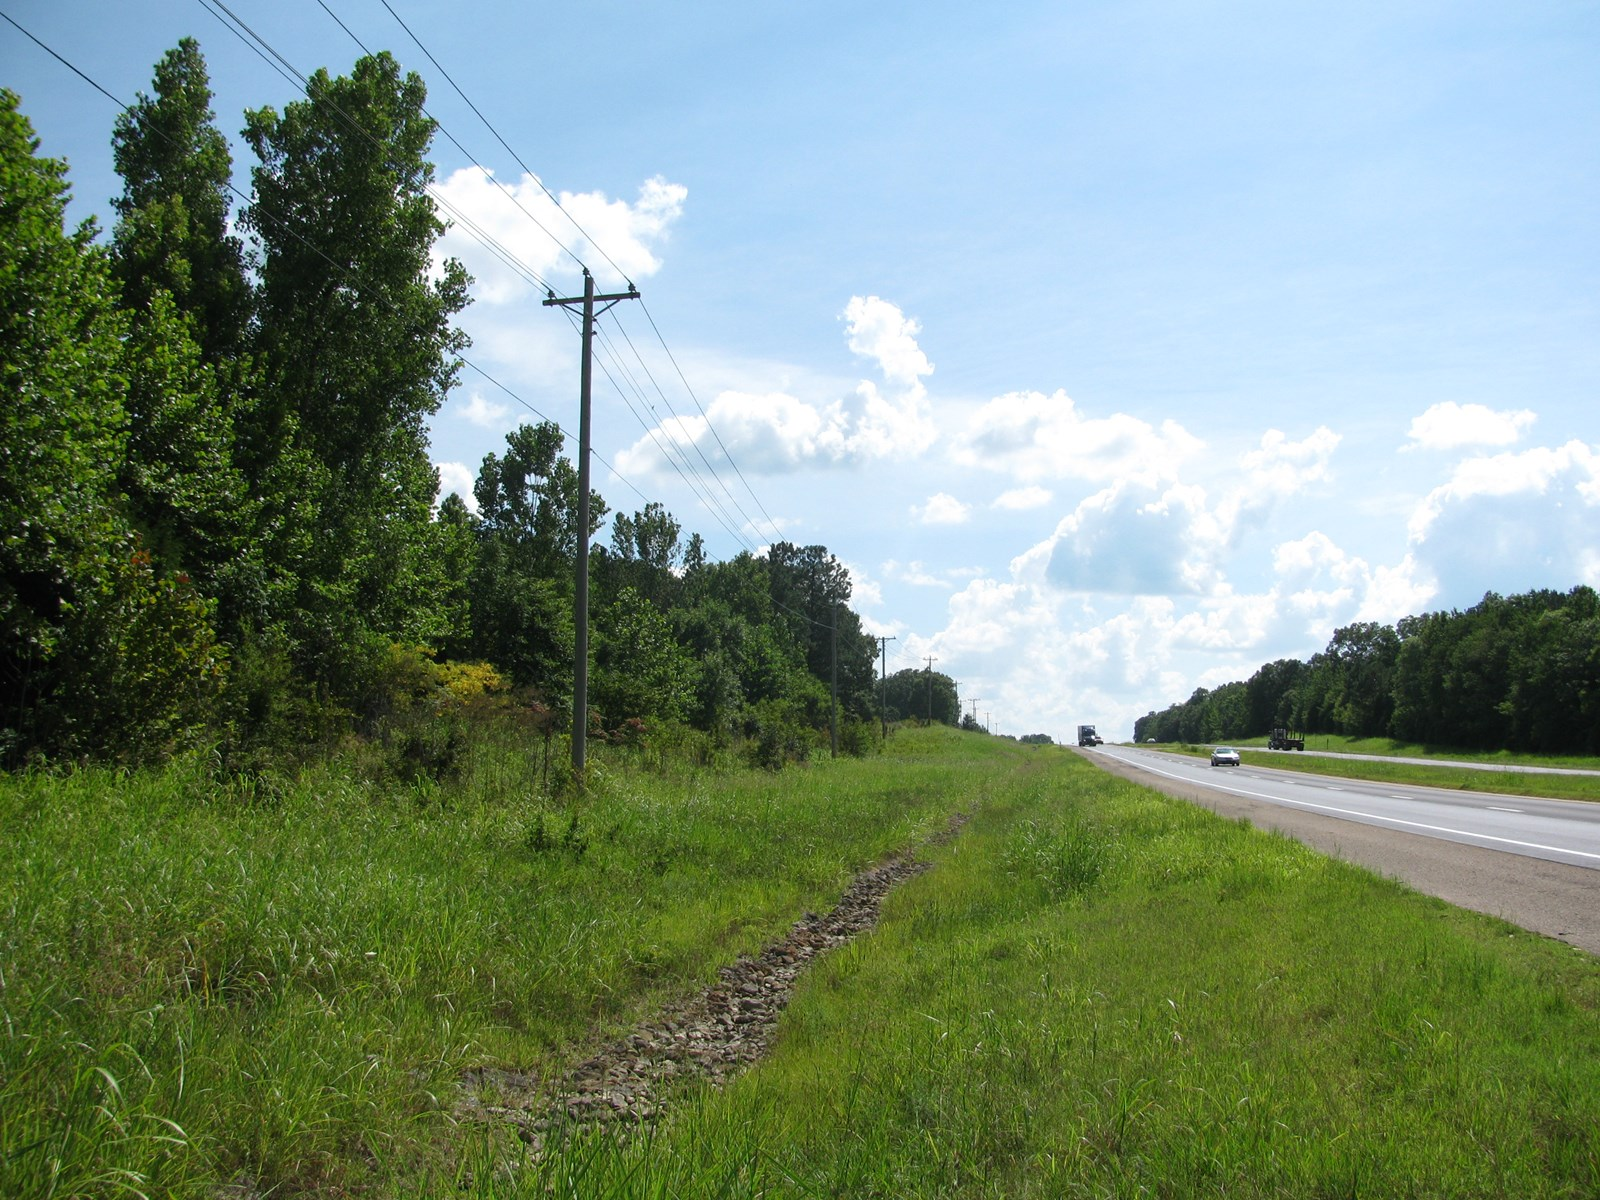 10 ACRES OF LAND FOR SALE IN ADAMSVILLE, TENNESSEE